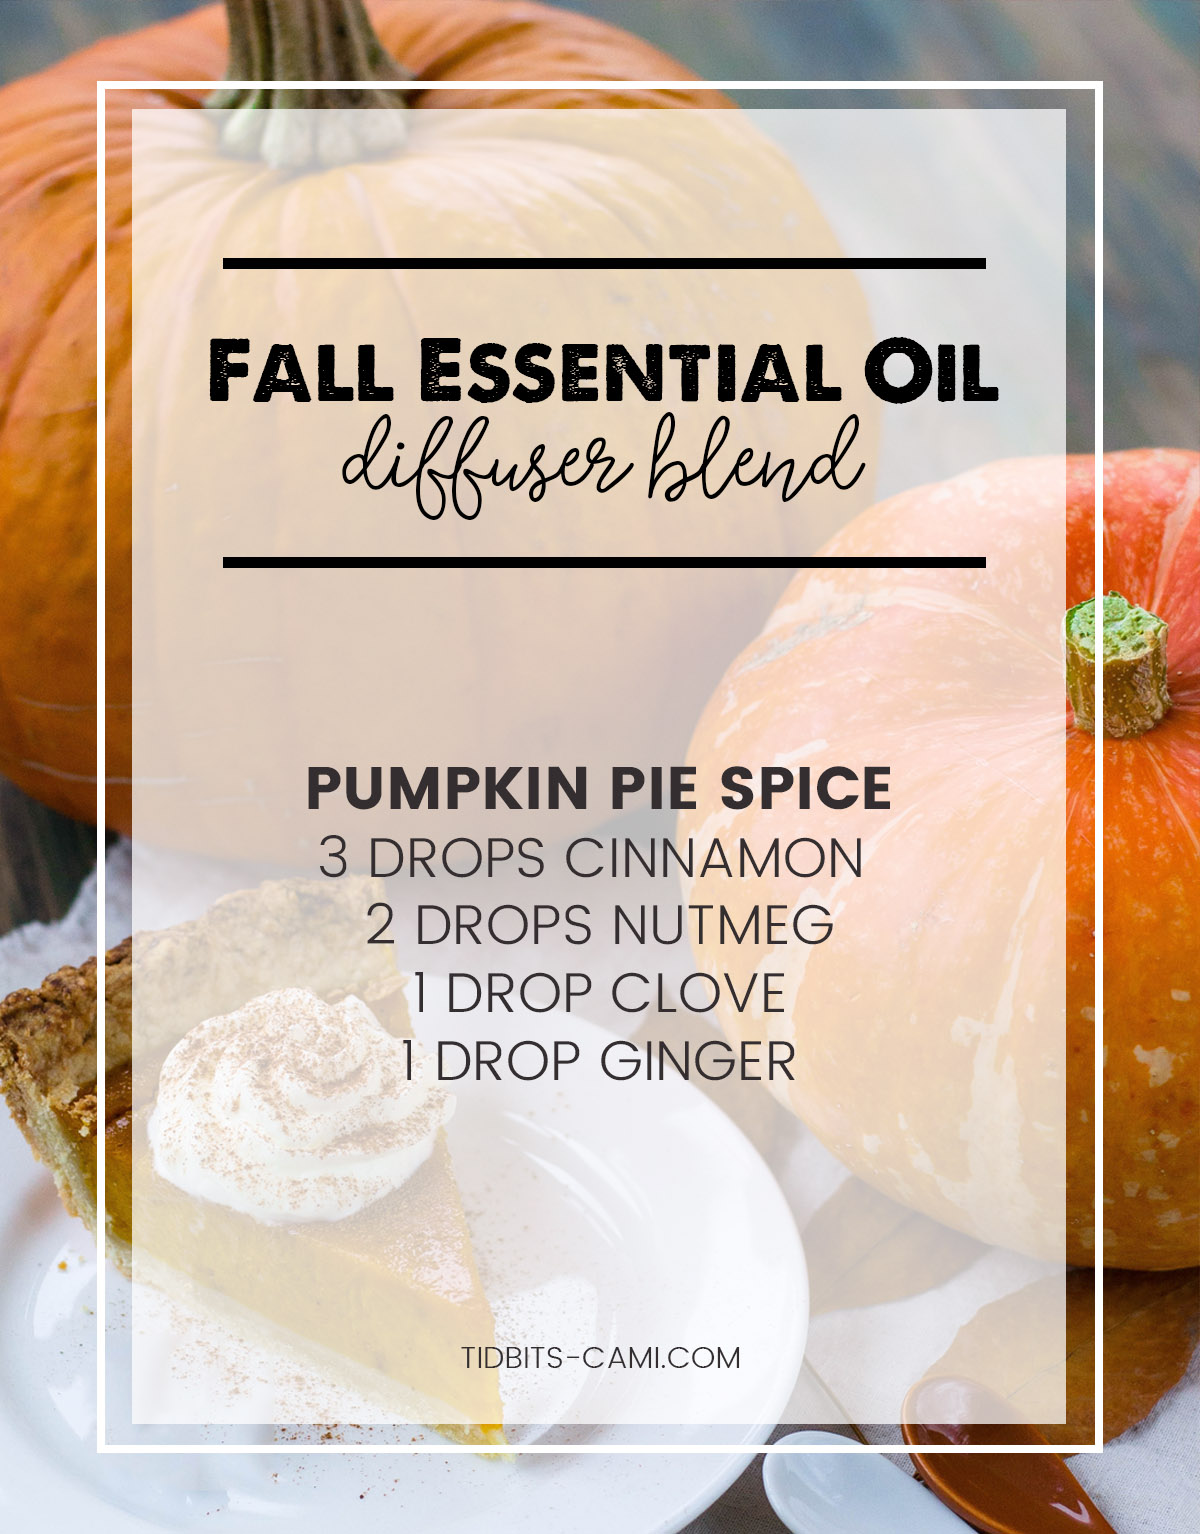 Pumpkin pie spice essential oil diffuser blend